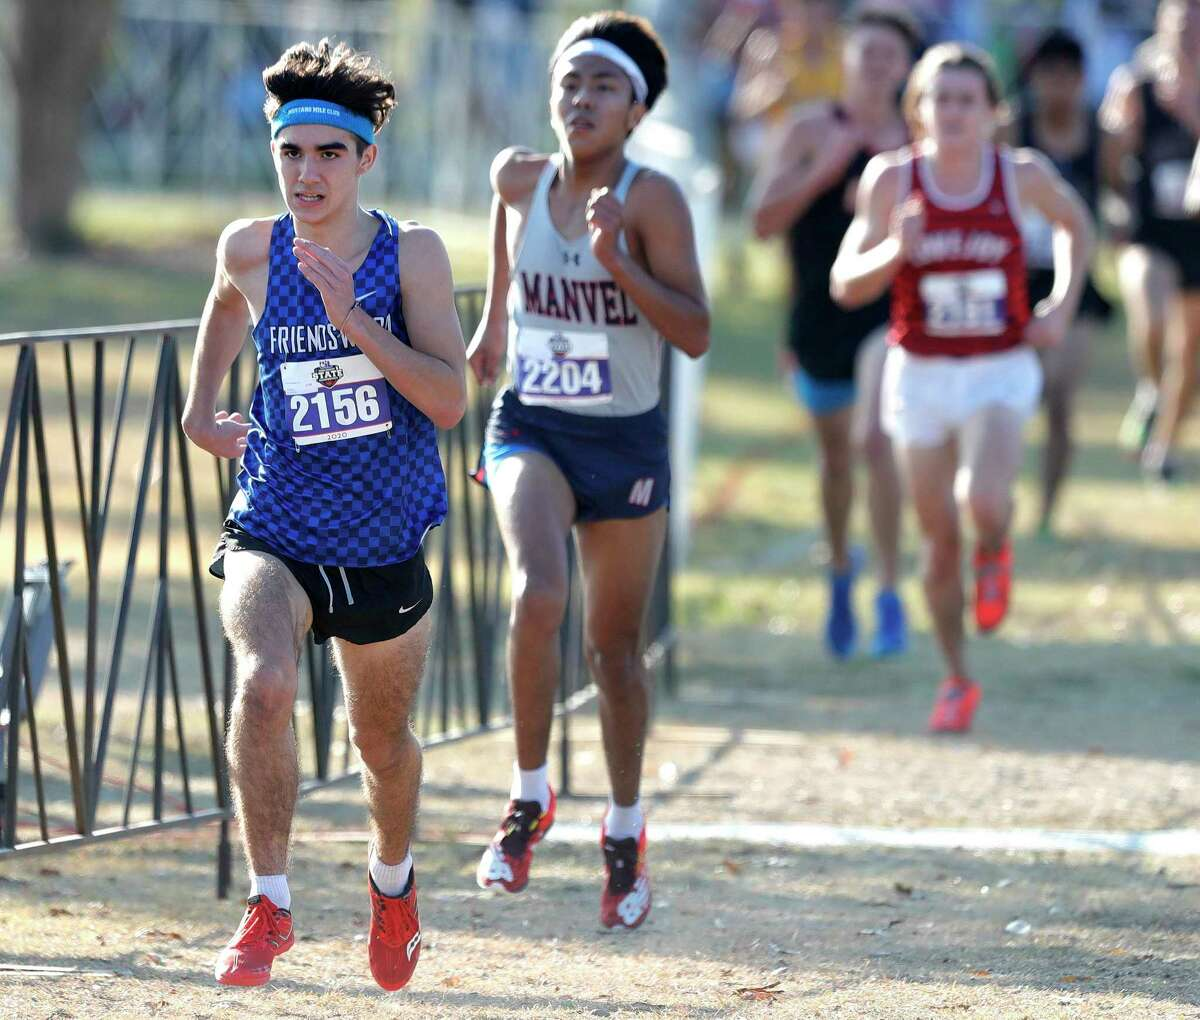 Ronan O'Donnell of Friendswood posted a 16:26.76 time in the Class 5A race during the UIL state cross country championships Monday at Old Settlers Park, Monday in Round Rock.